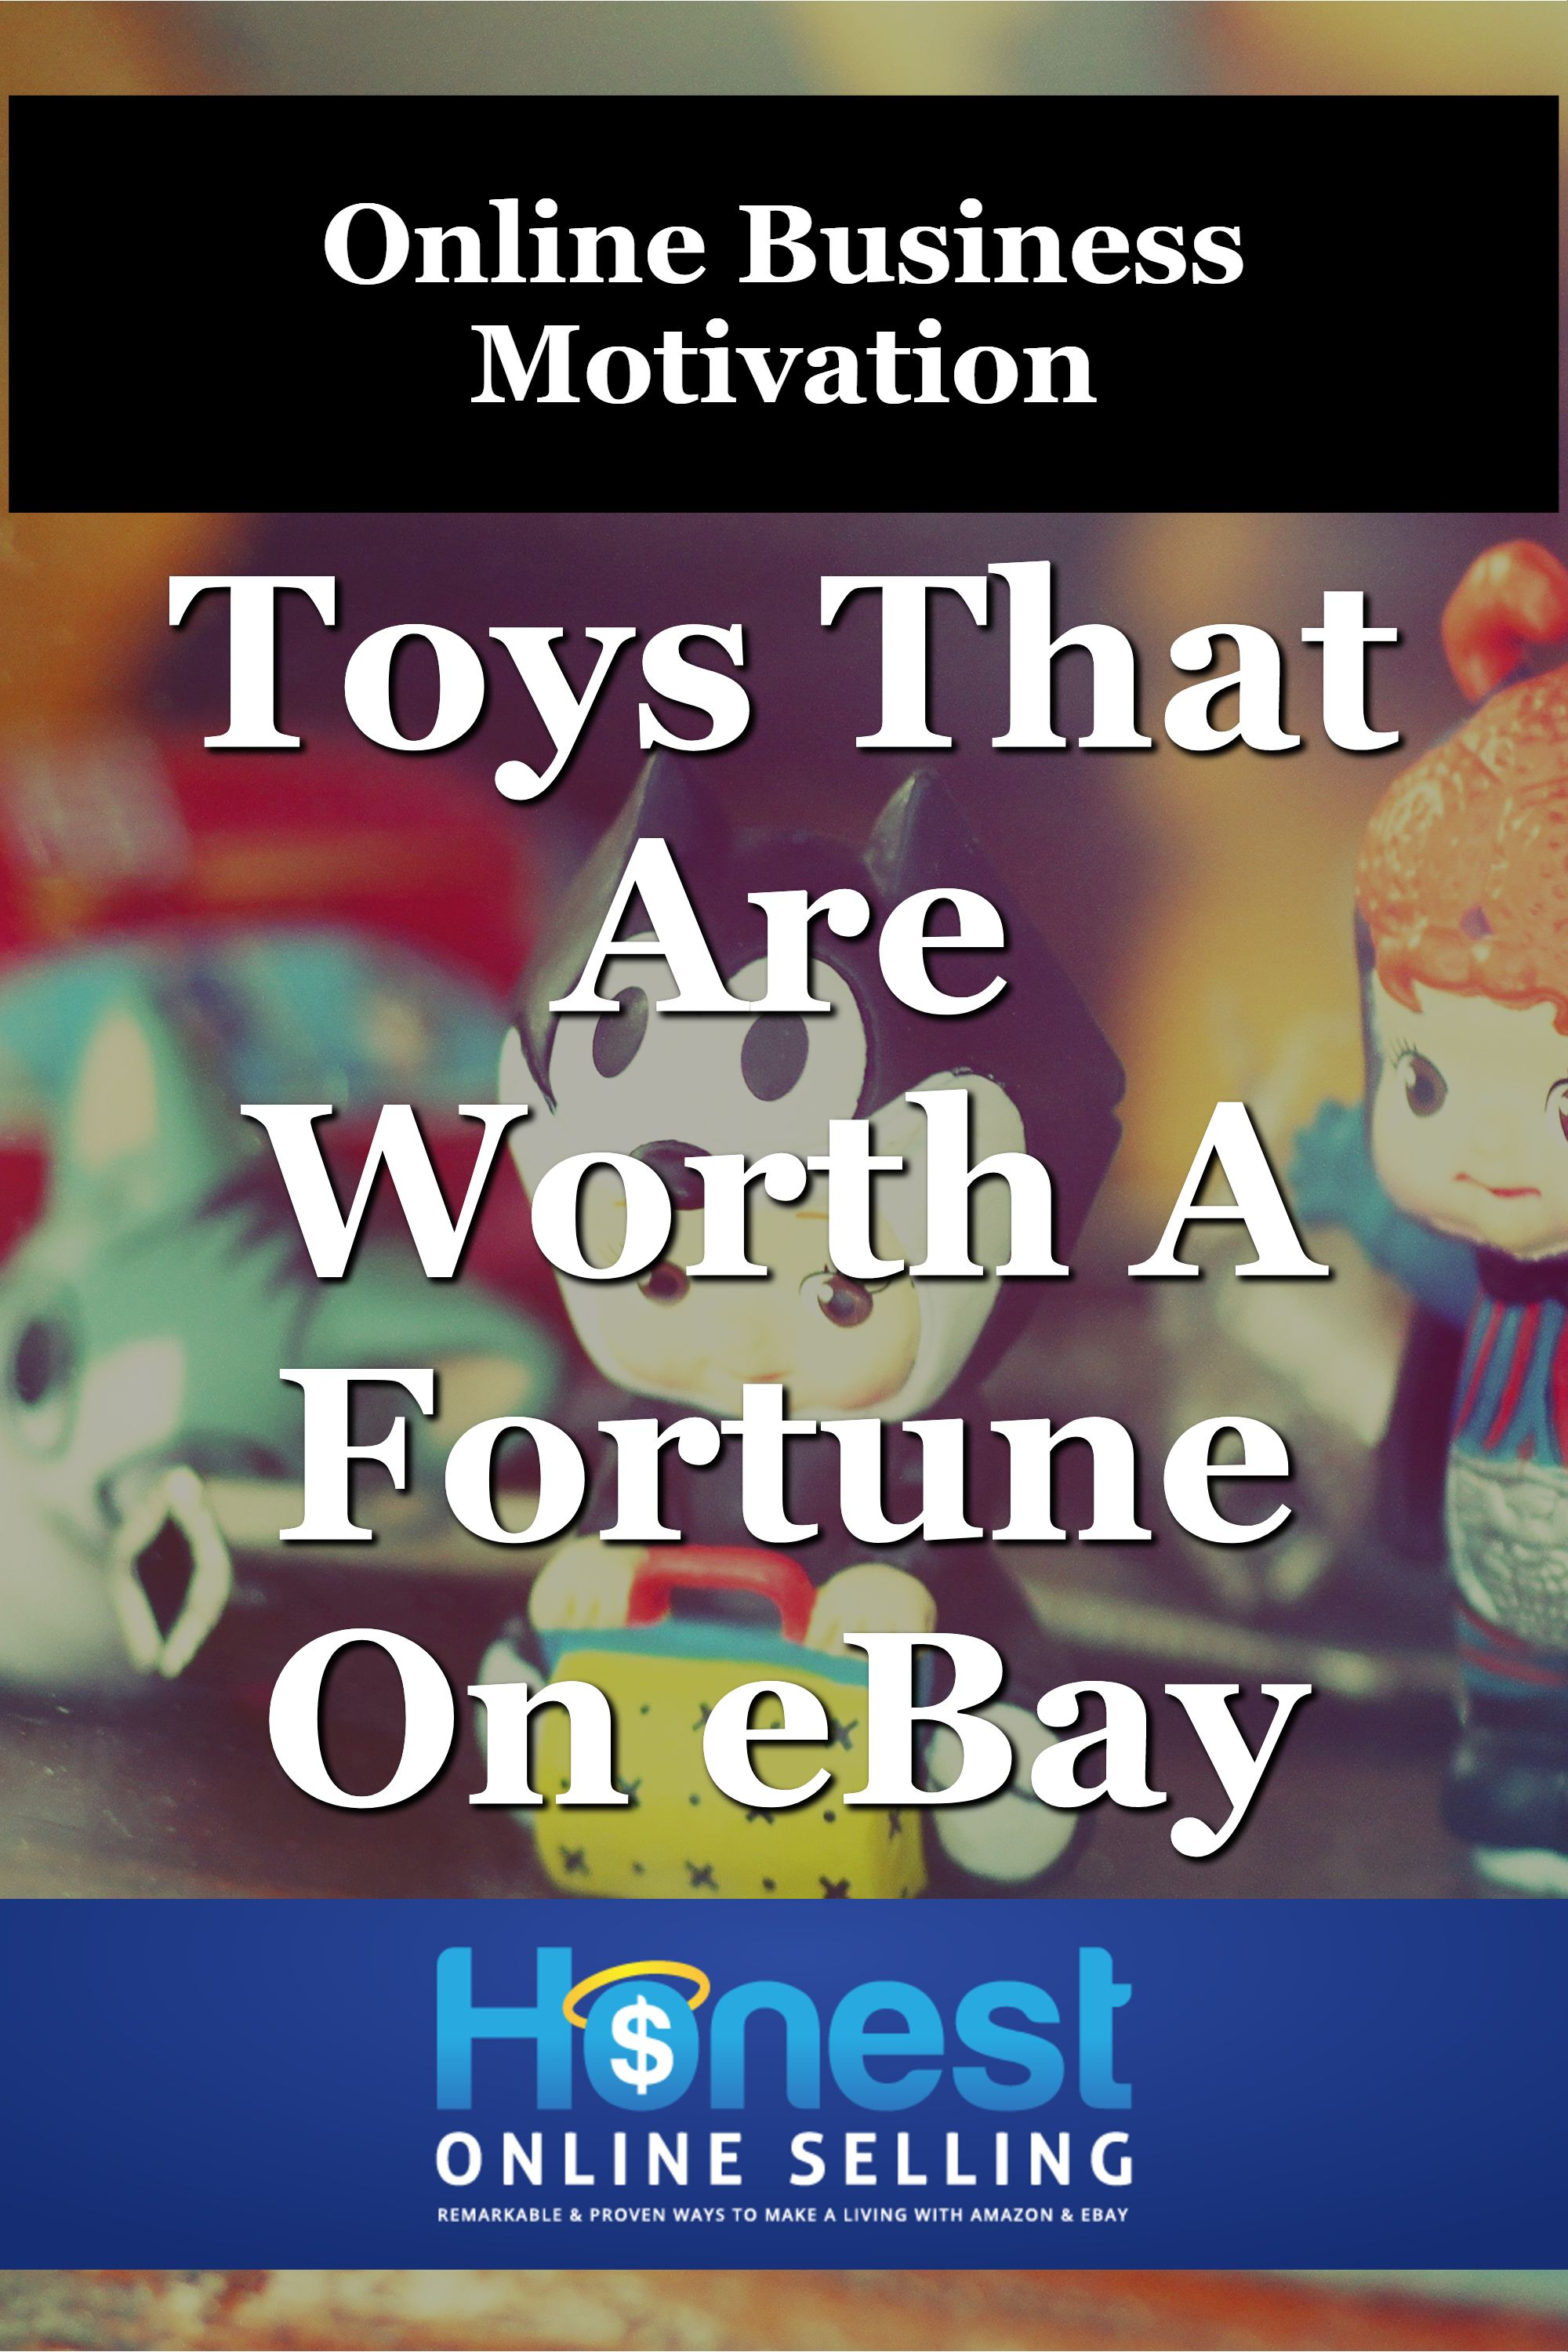 These Toys Used And New Are Worth Reselling On Ebay Amazon Business Motivation Ebay Selling Tips Ebay Business Ideas